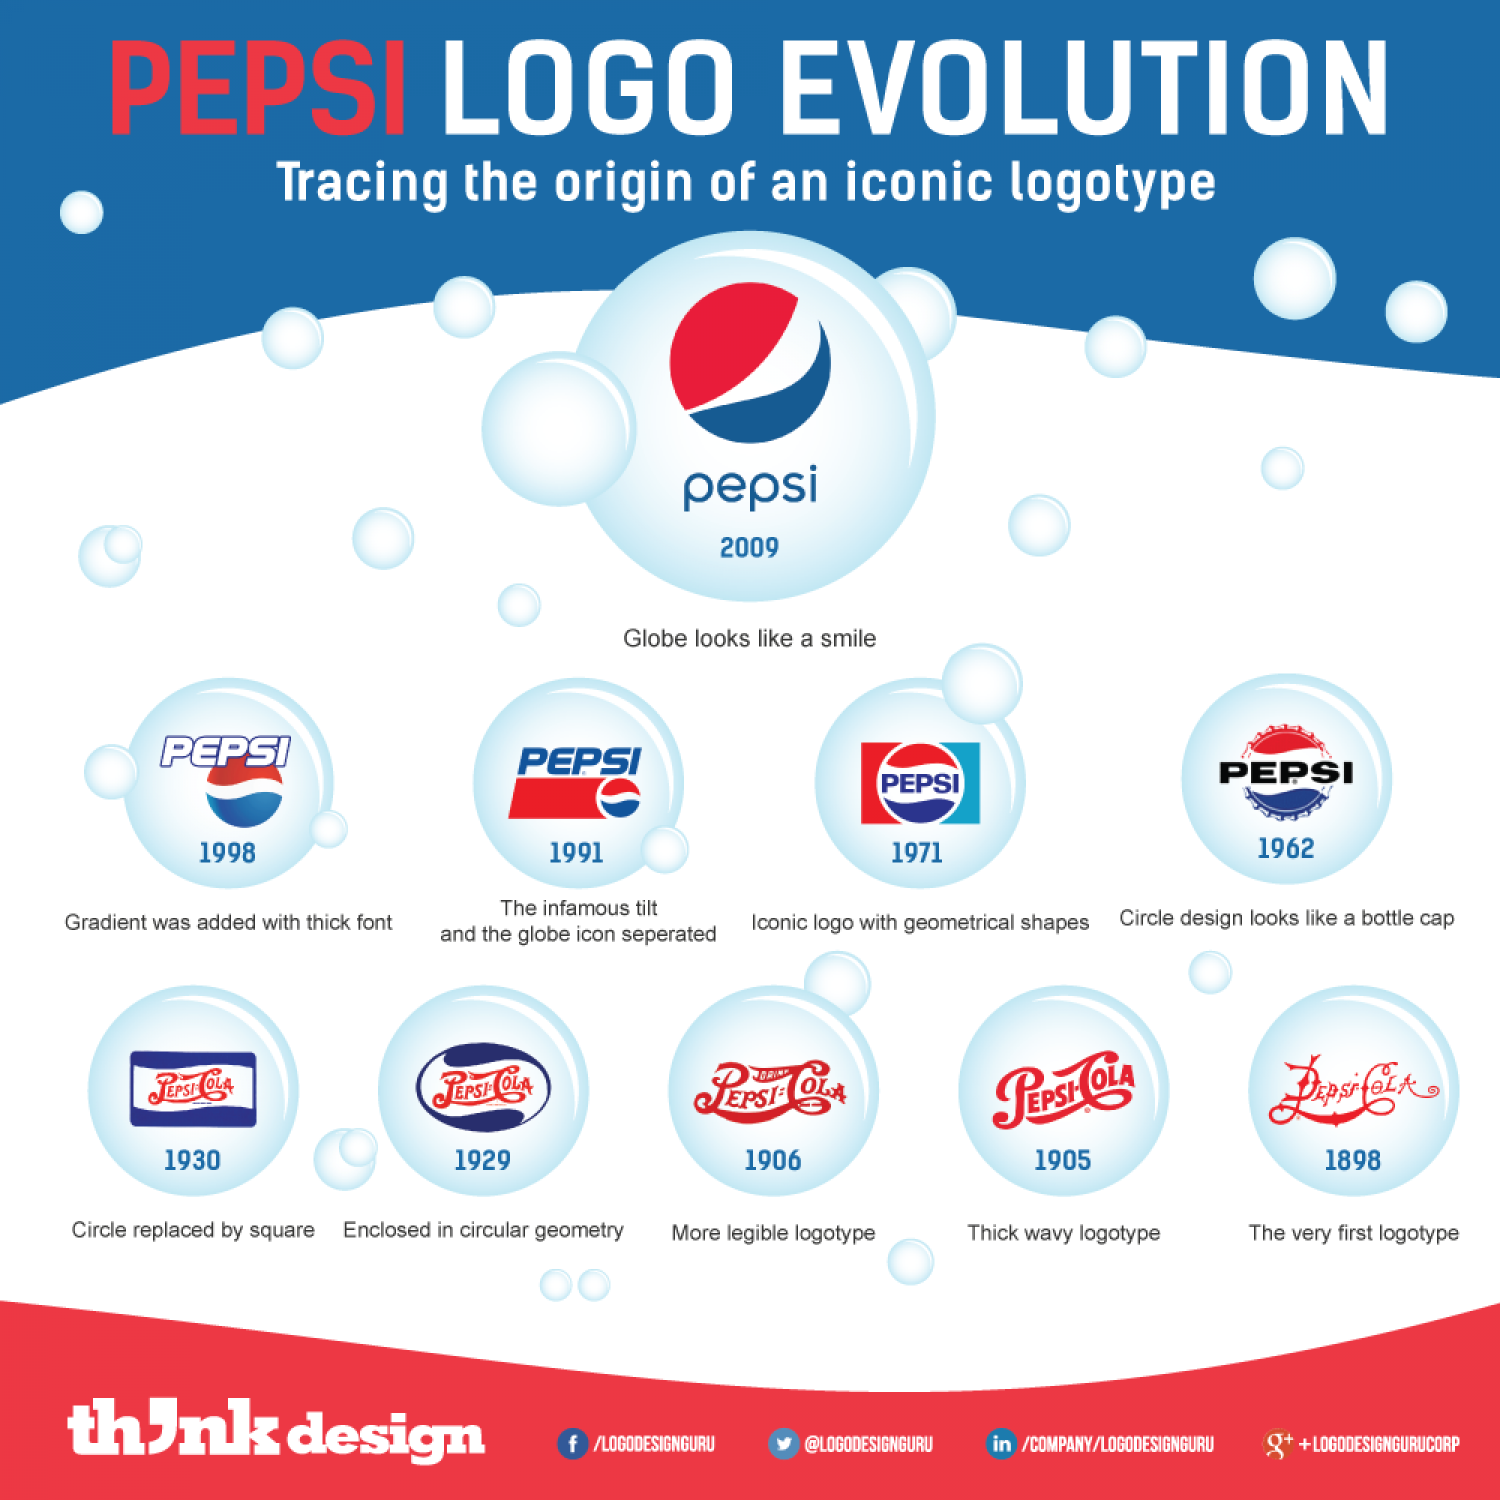 pepsi logo evolution tracing the origin of an iconic logotype visual ly